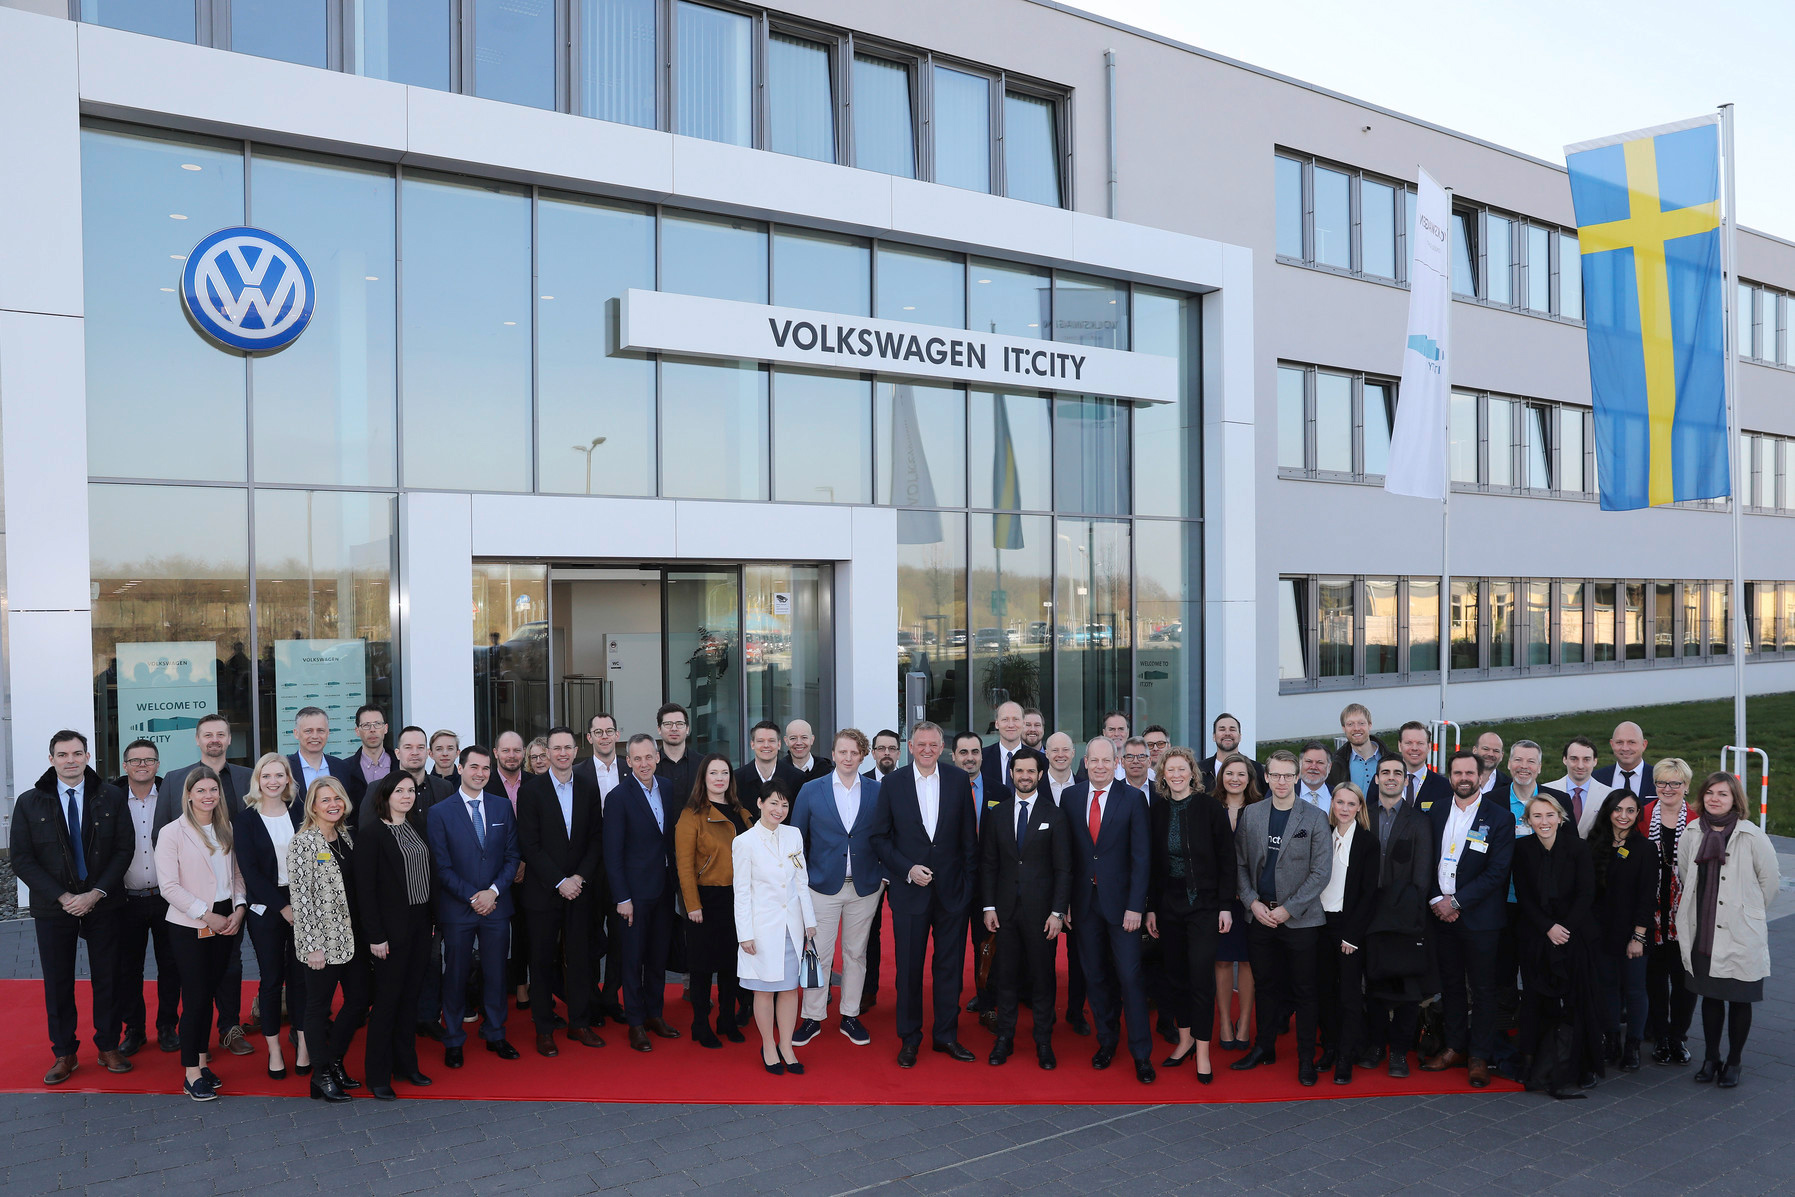 Some 30 startups from Sweden participated in a highly appreciated visit to Volkswagen in Wolfsburg together with Prince Carl Philip of Sweden. Photo: VW.